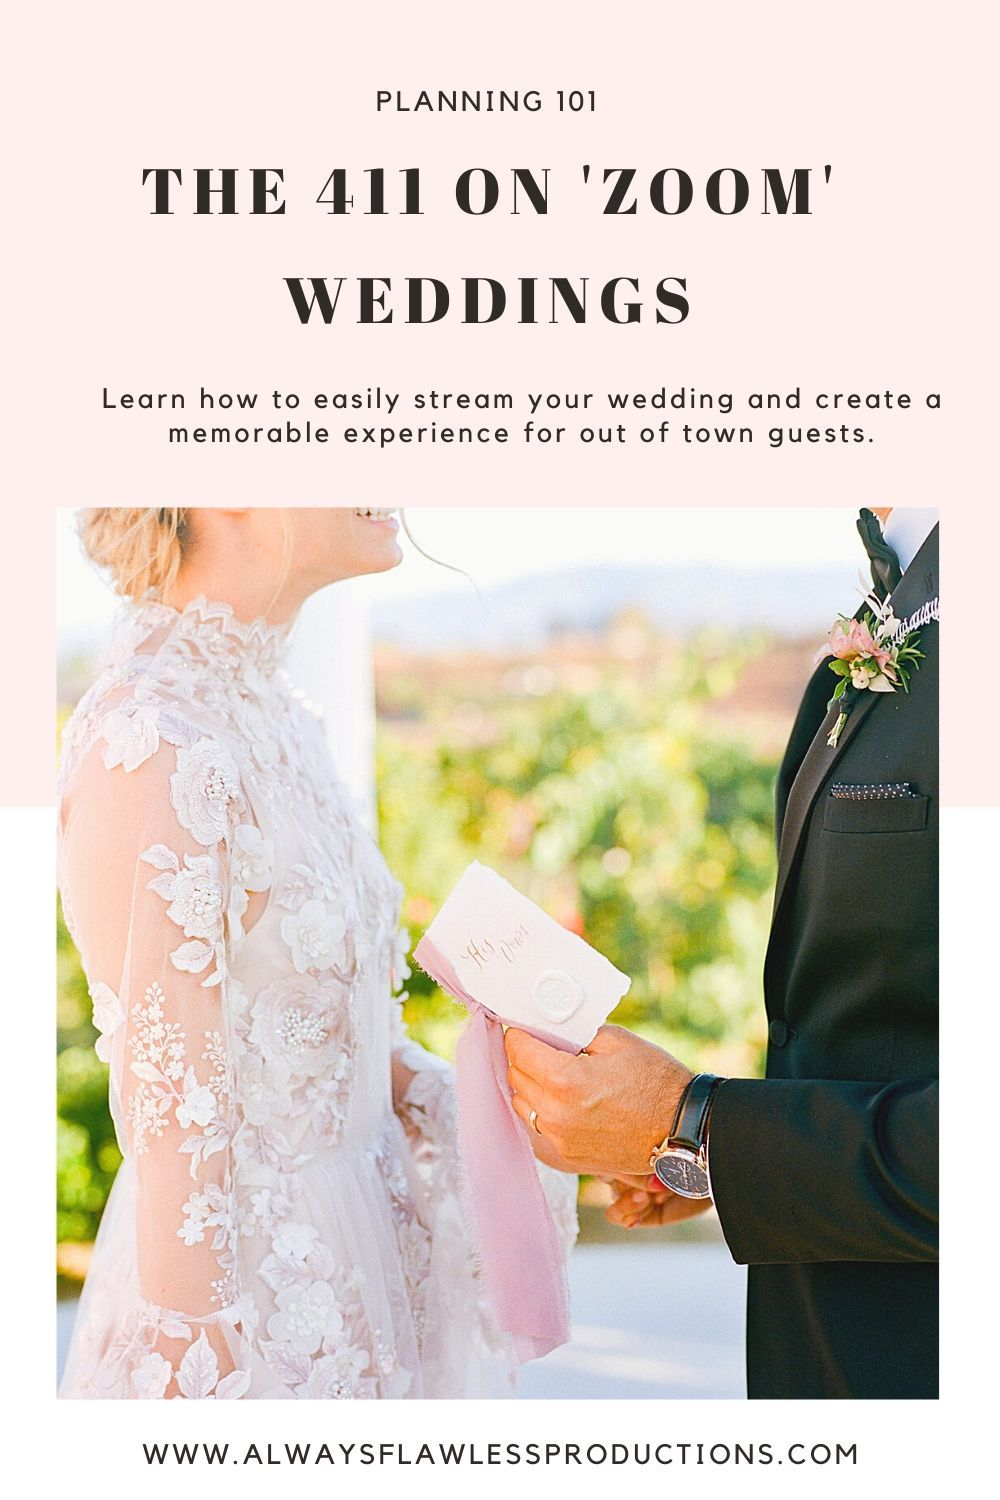 Learn How To Live Stream Your Wedding Wedding Planning Tips Tricks And Advice In 2020 Wedding Wedding Pro Wedding Advice